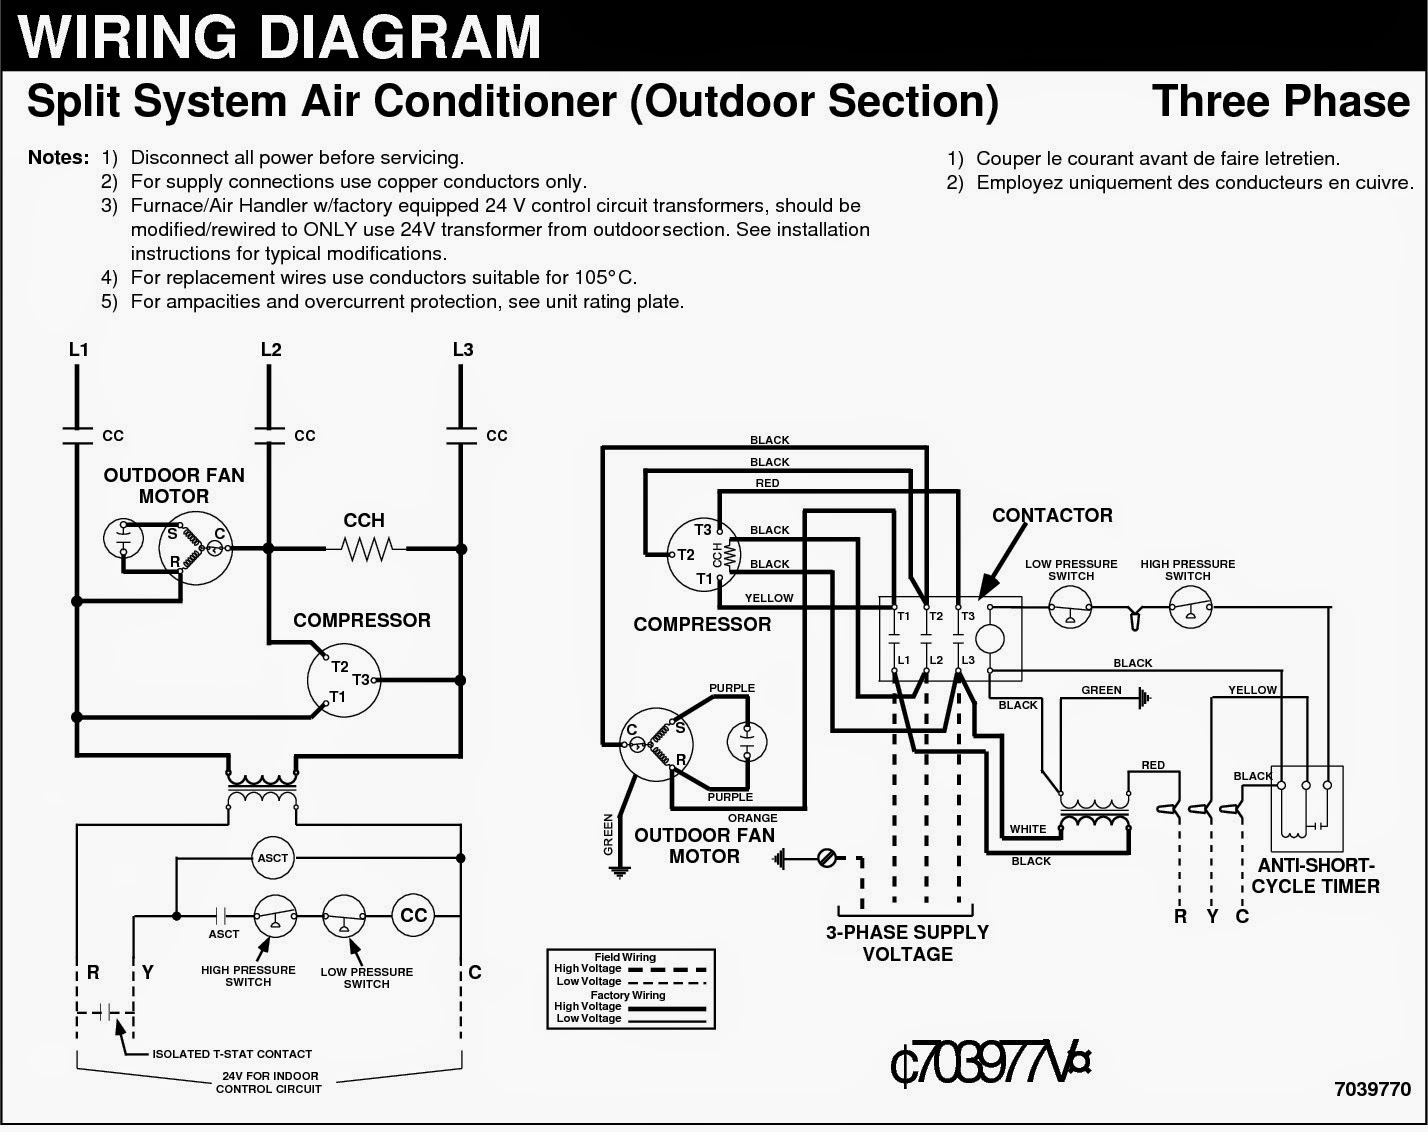 3+phase electrical wiring diagrams for air conditioning systems part two residential hvac wiring diagrams at soozxer.org